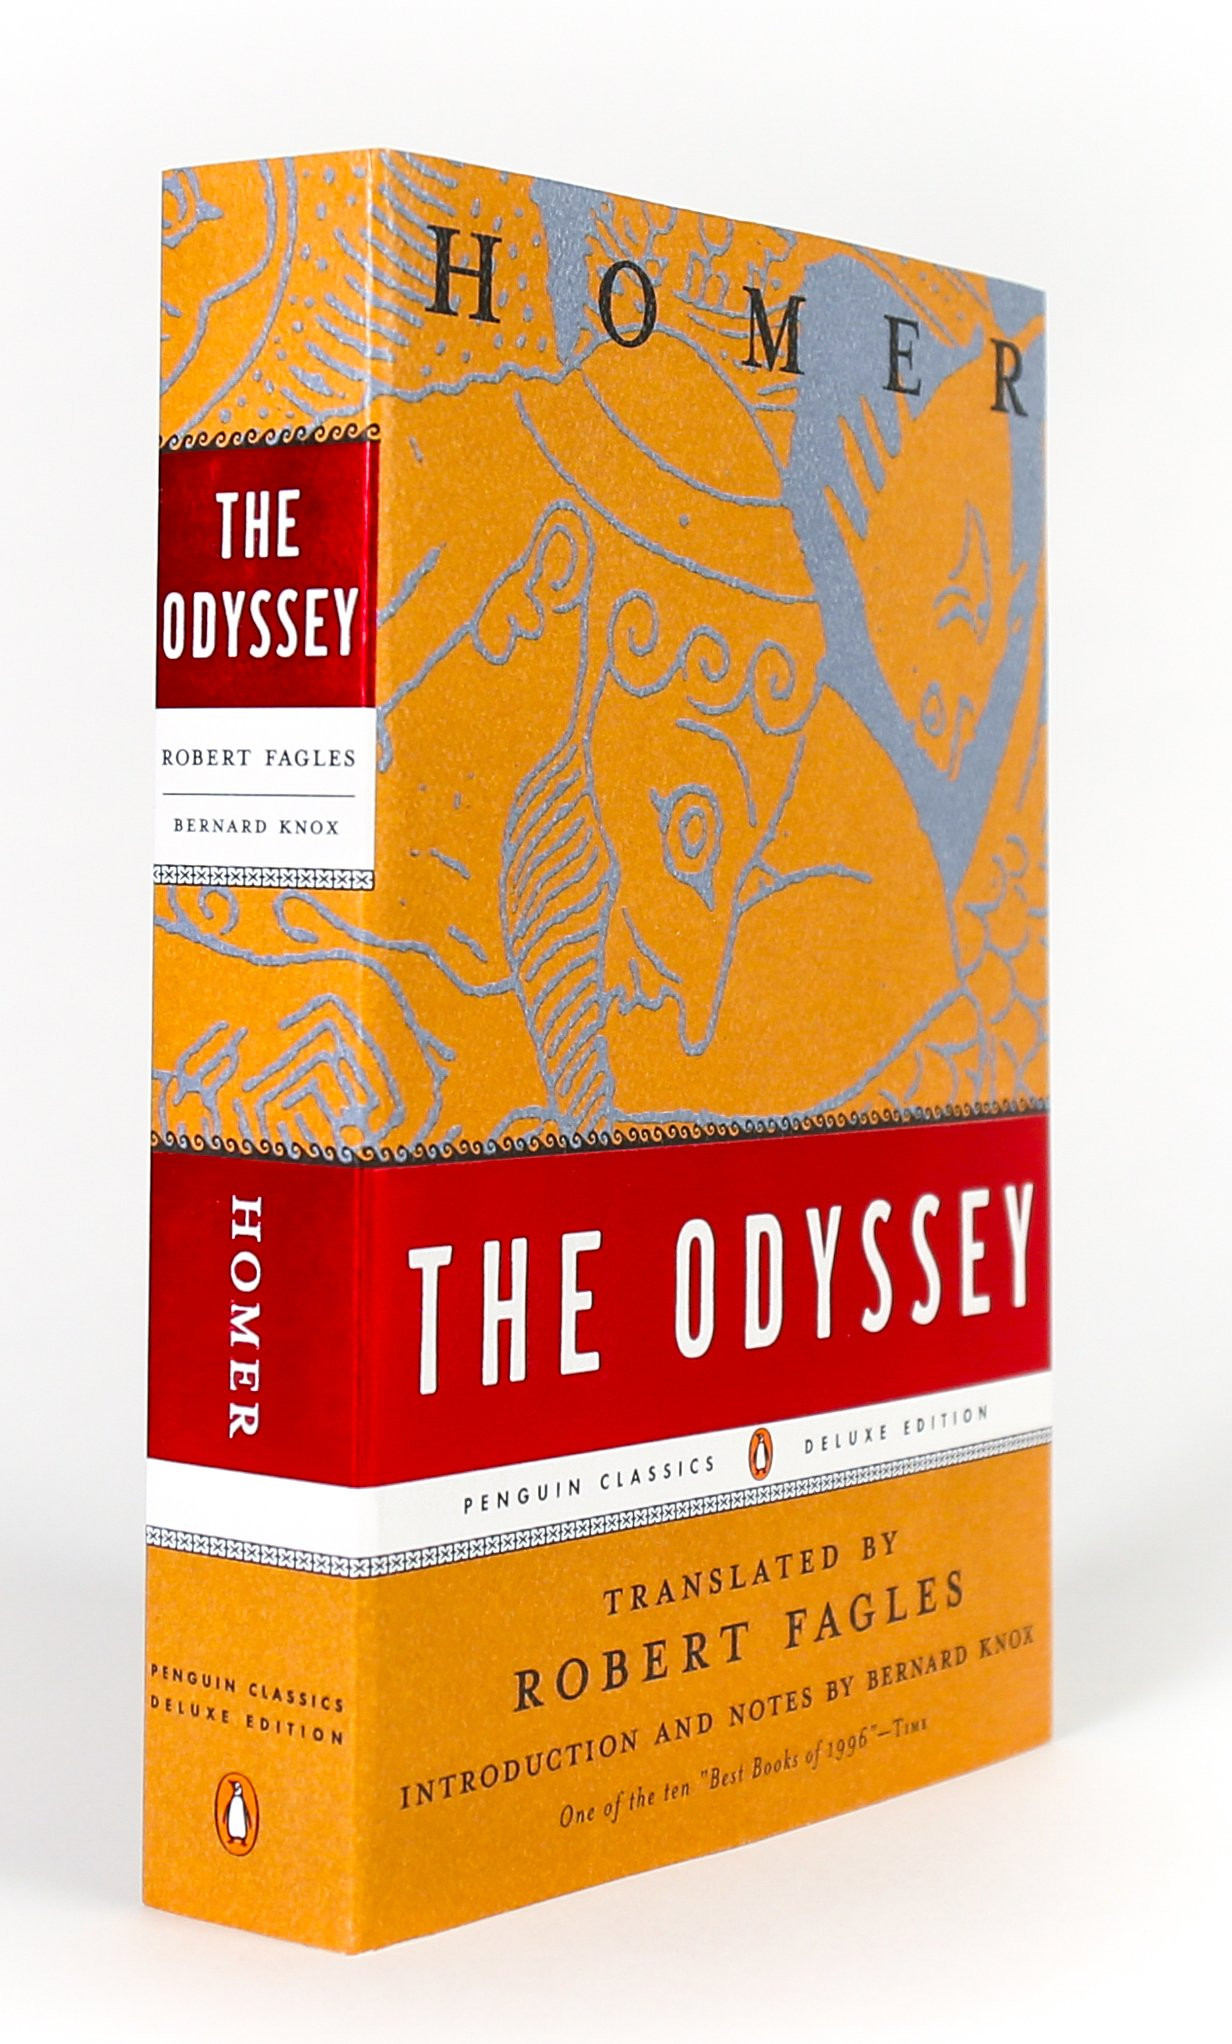 proflowers 19.99 free vase of amazon com the odyssey 9780140268867 homer robert fagles intended for amazon com the odyssey 9780140268867 homer robert fagles bernard knox books